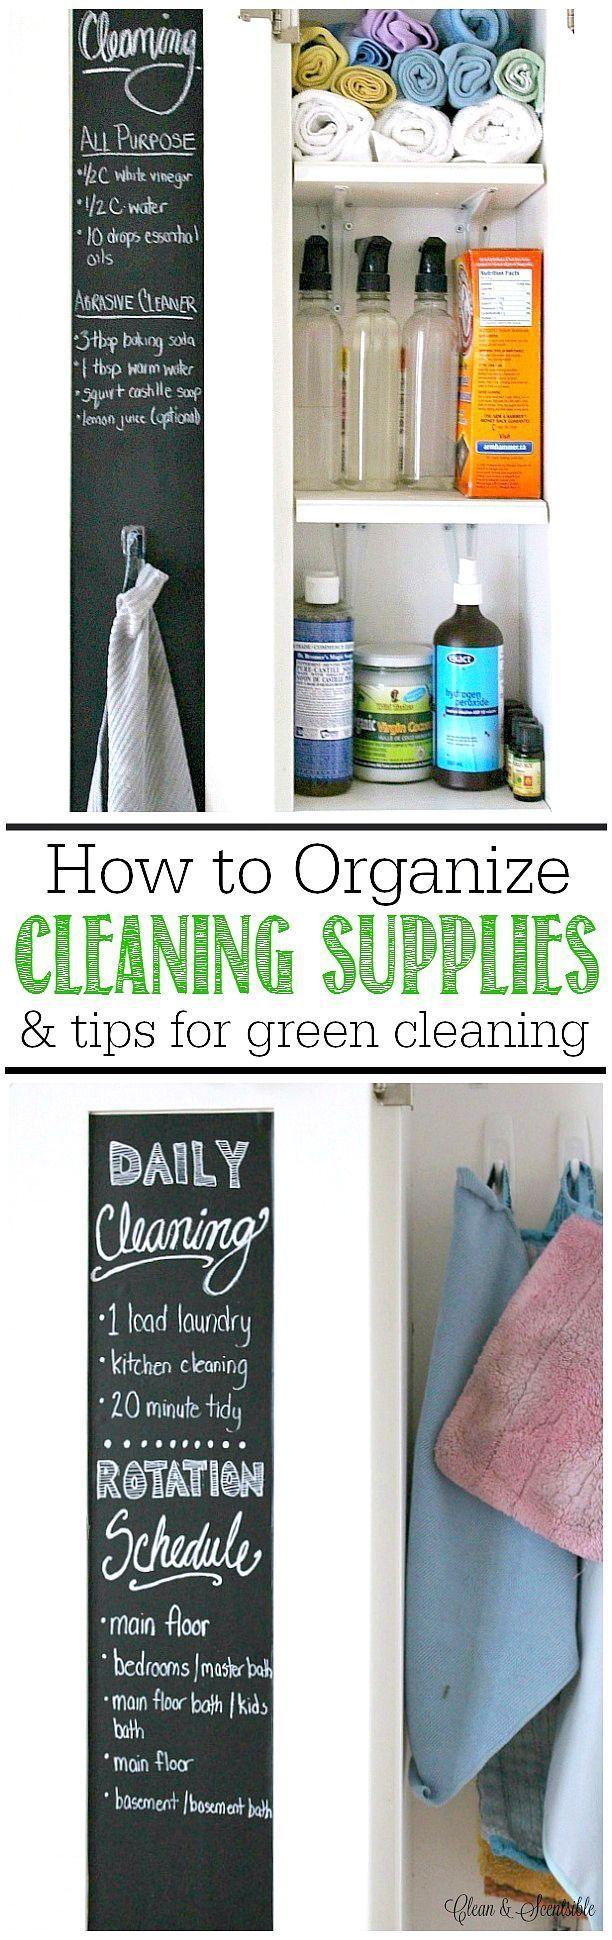 How to organize cleaning supplies and tips for green cleaning.